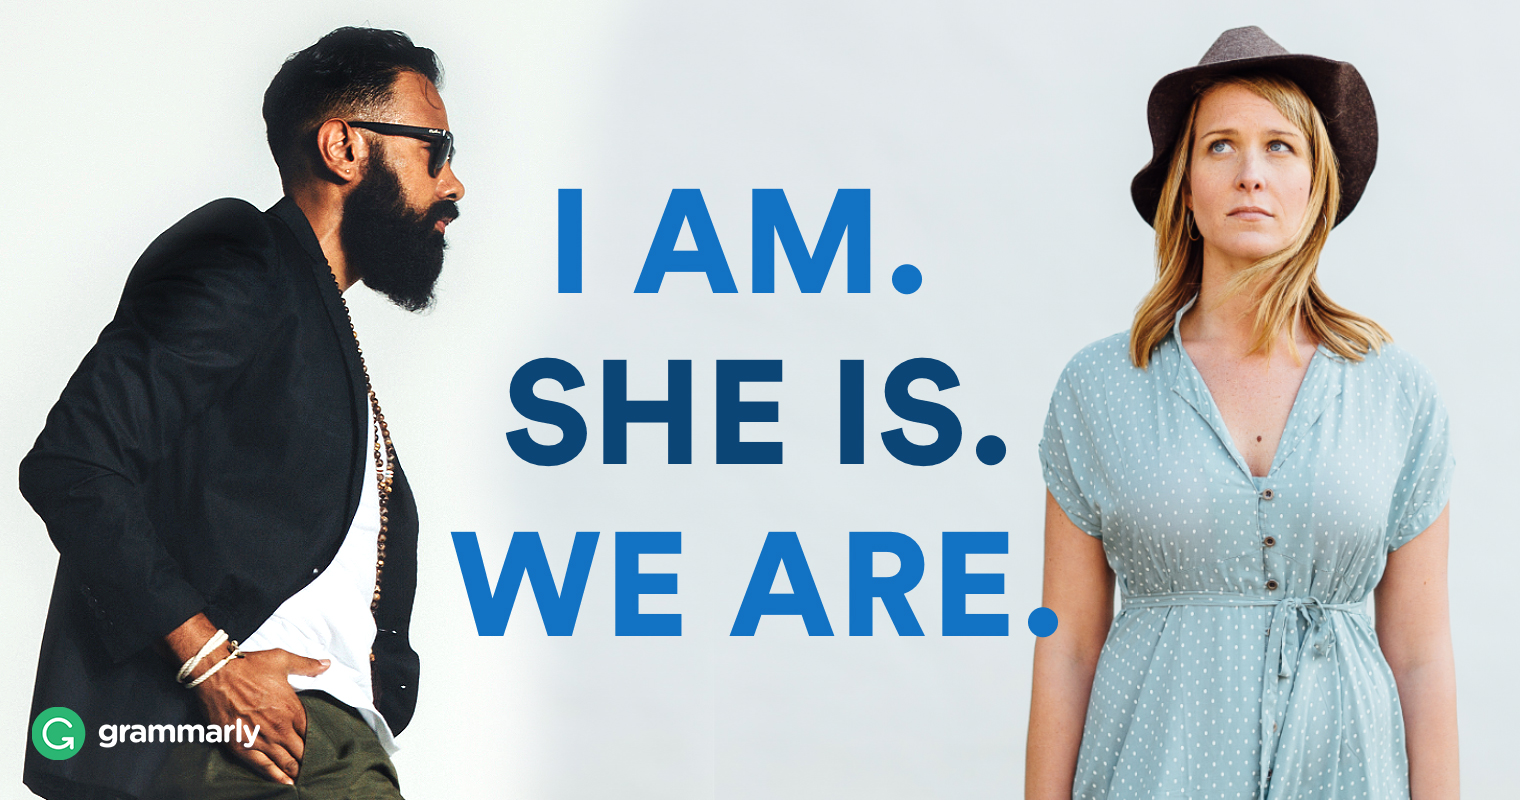 I am. She is. We are.